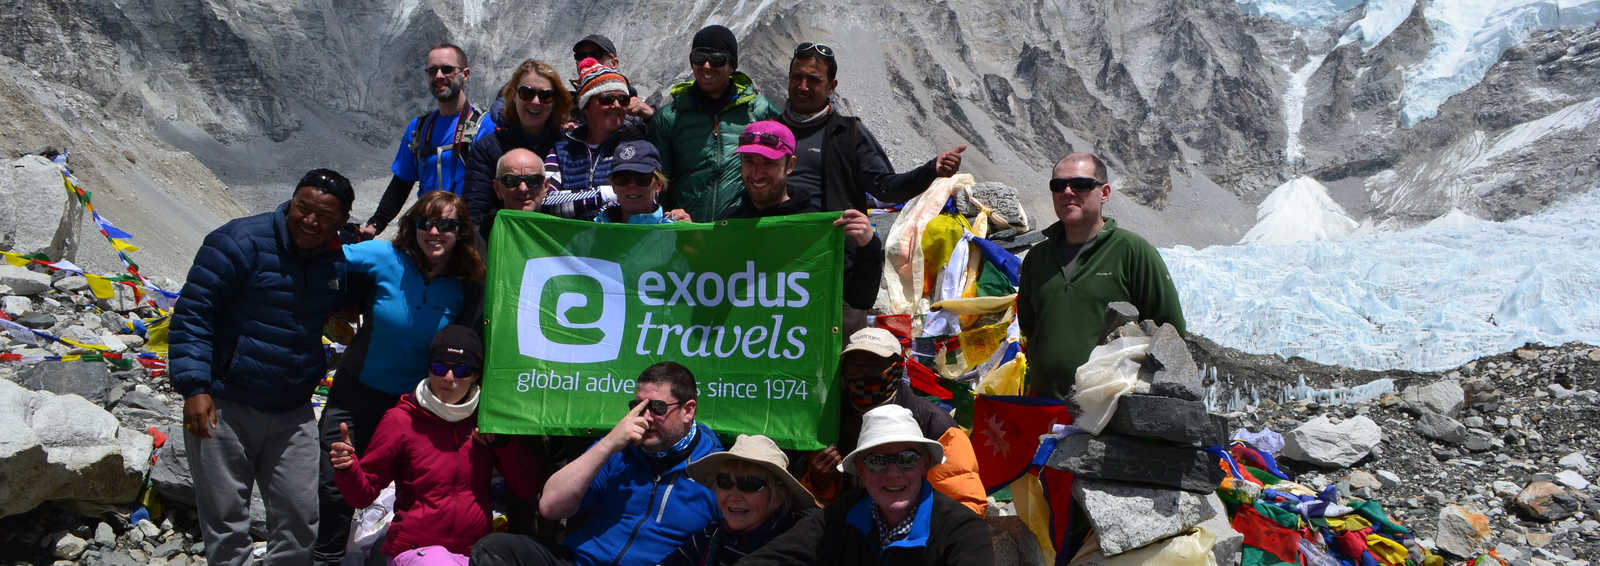 Exodus group at the Everest Base Camp